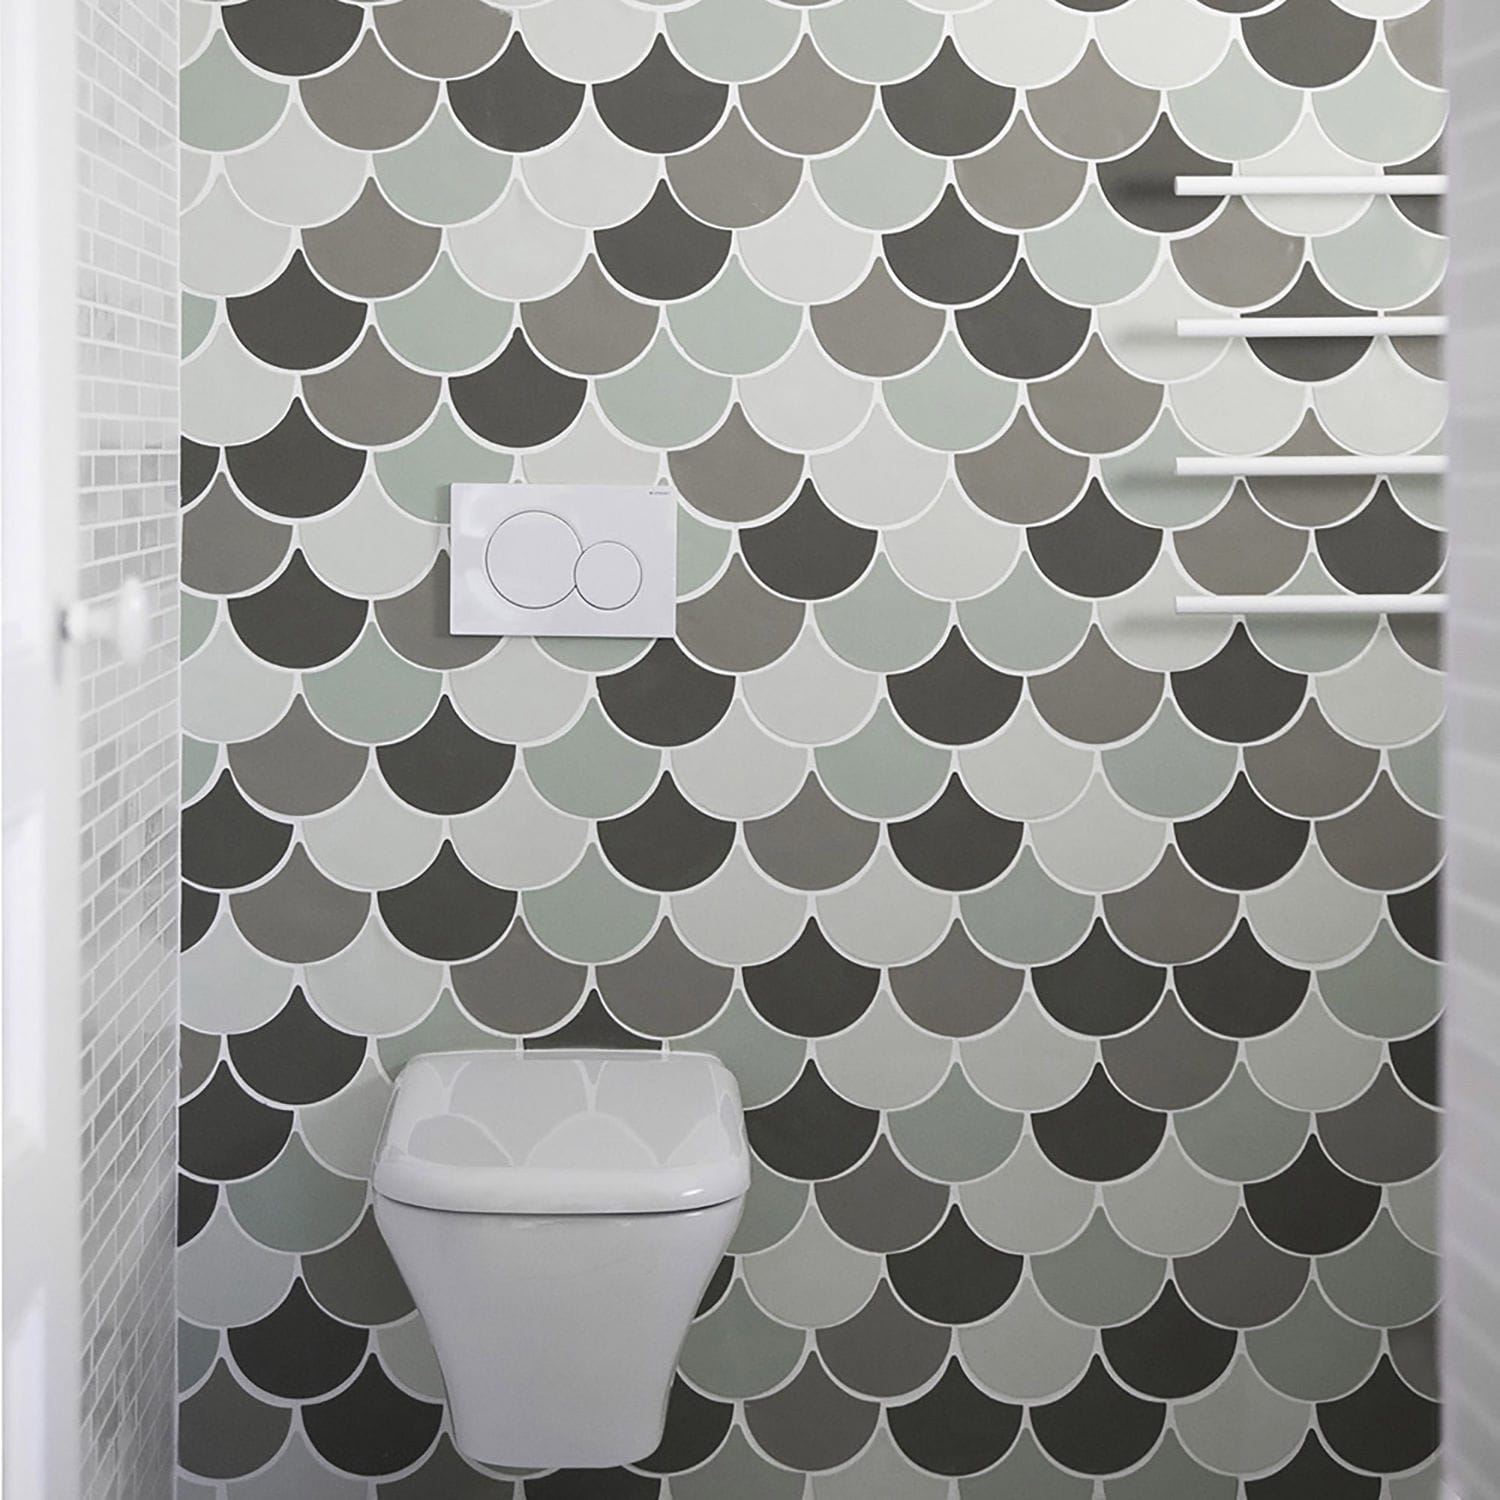 Indoor tile / outdoor / wall / floor - ECAILLES - Normandy Ceramics ...